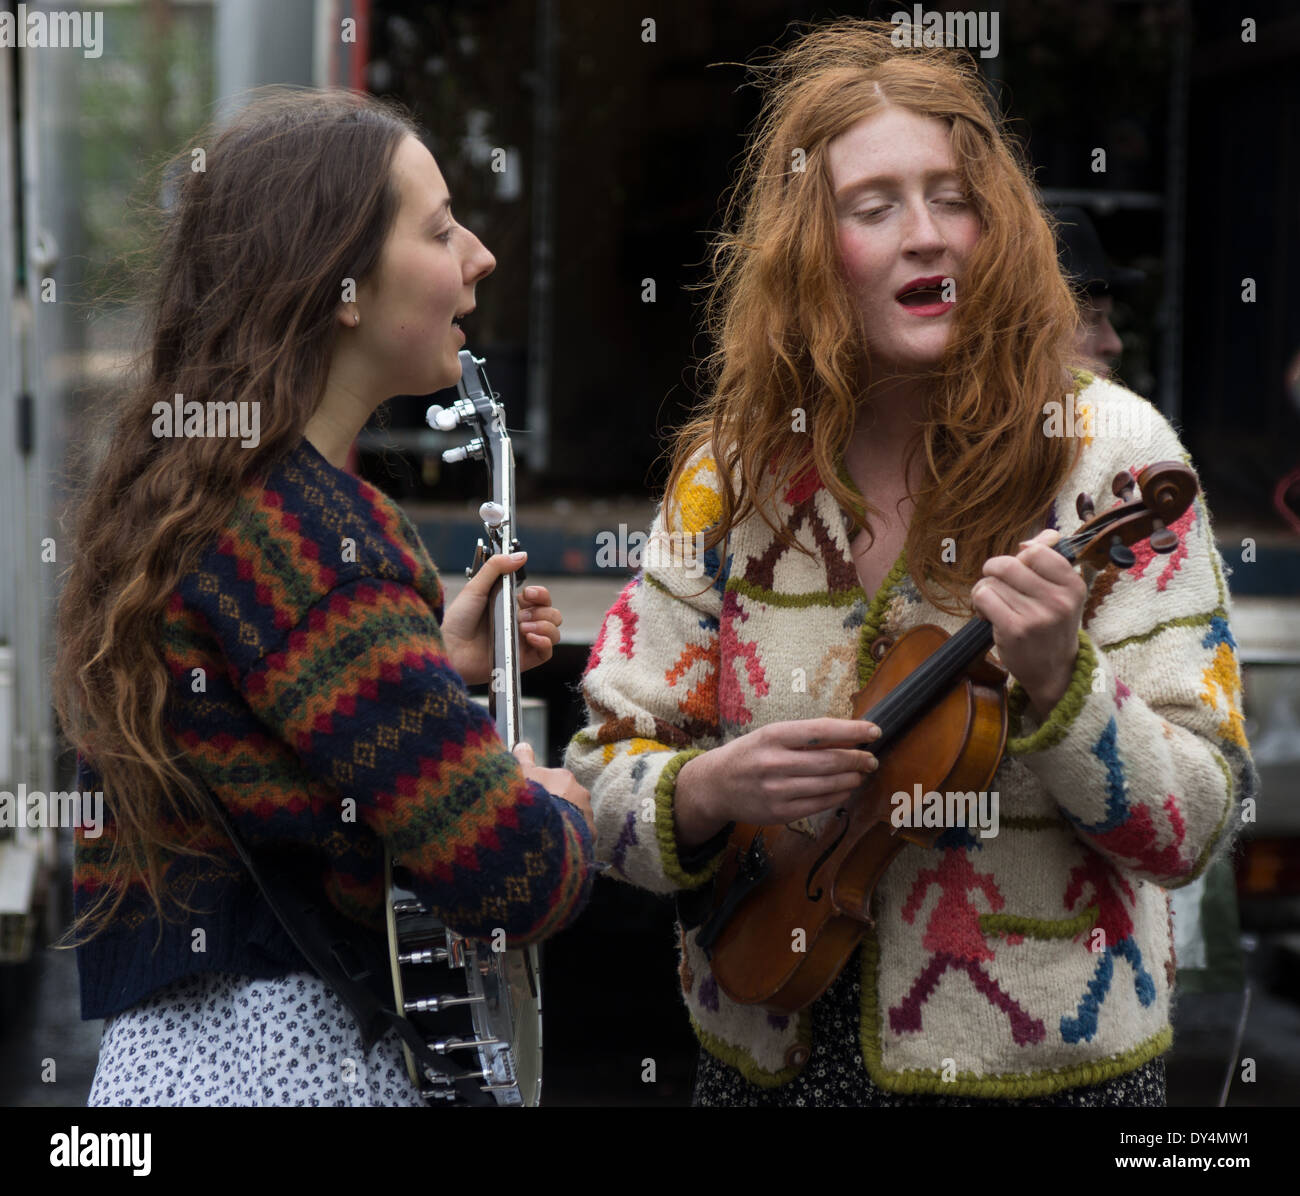 two female street musicians London. London buskers - Stock Image